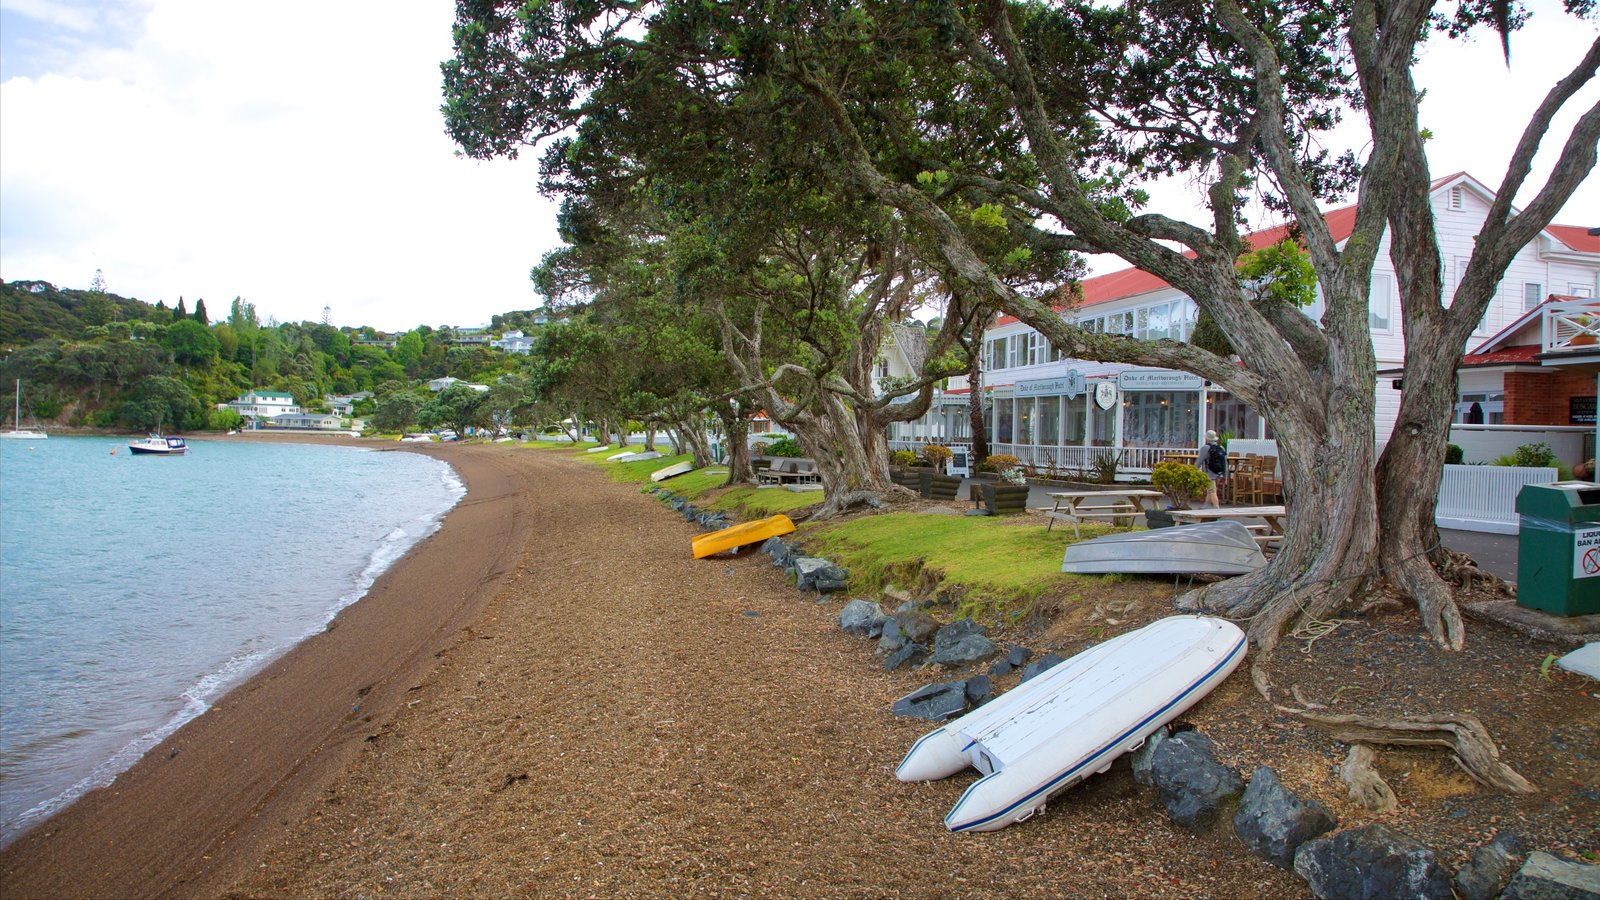 Russell Beach which includes a coastal town, a bay or harbor and a pebble beach